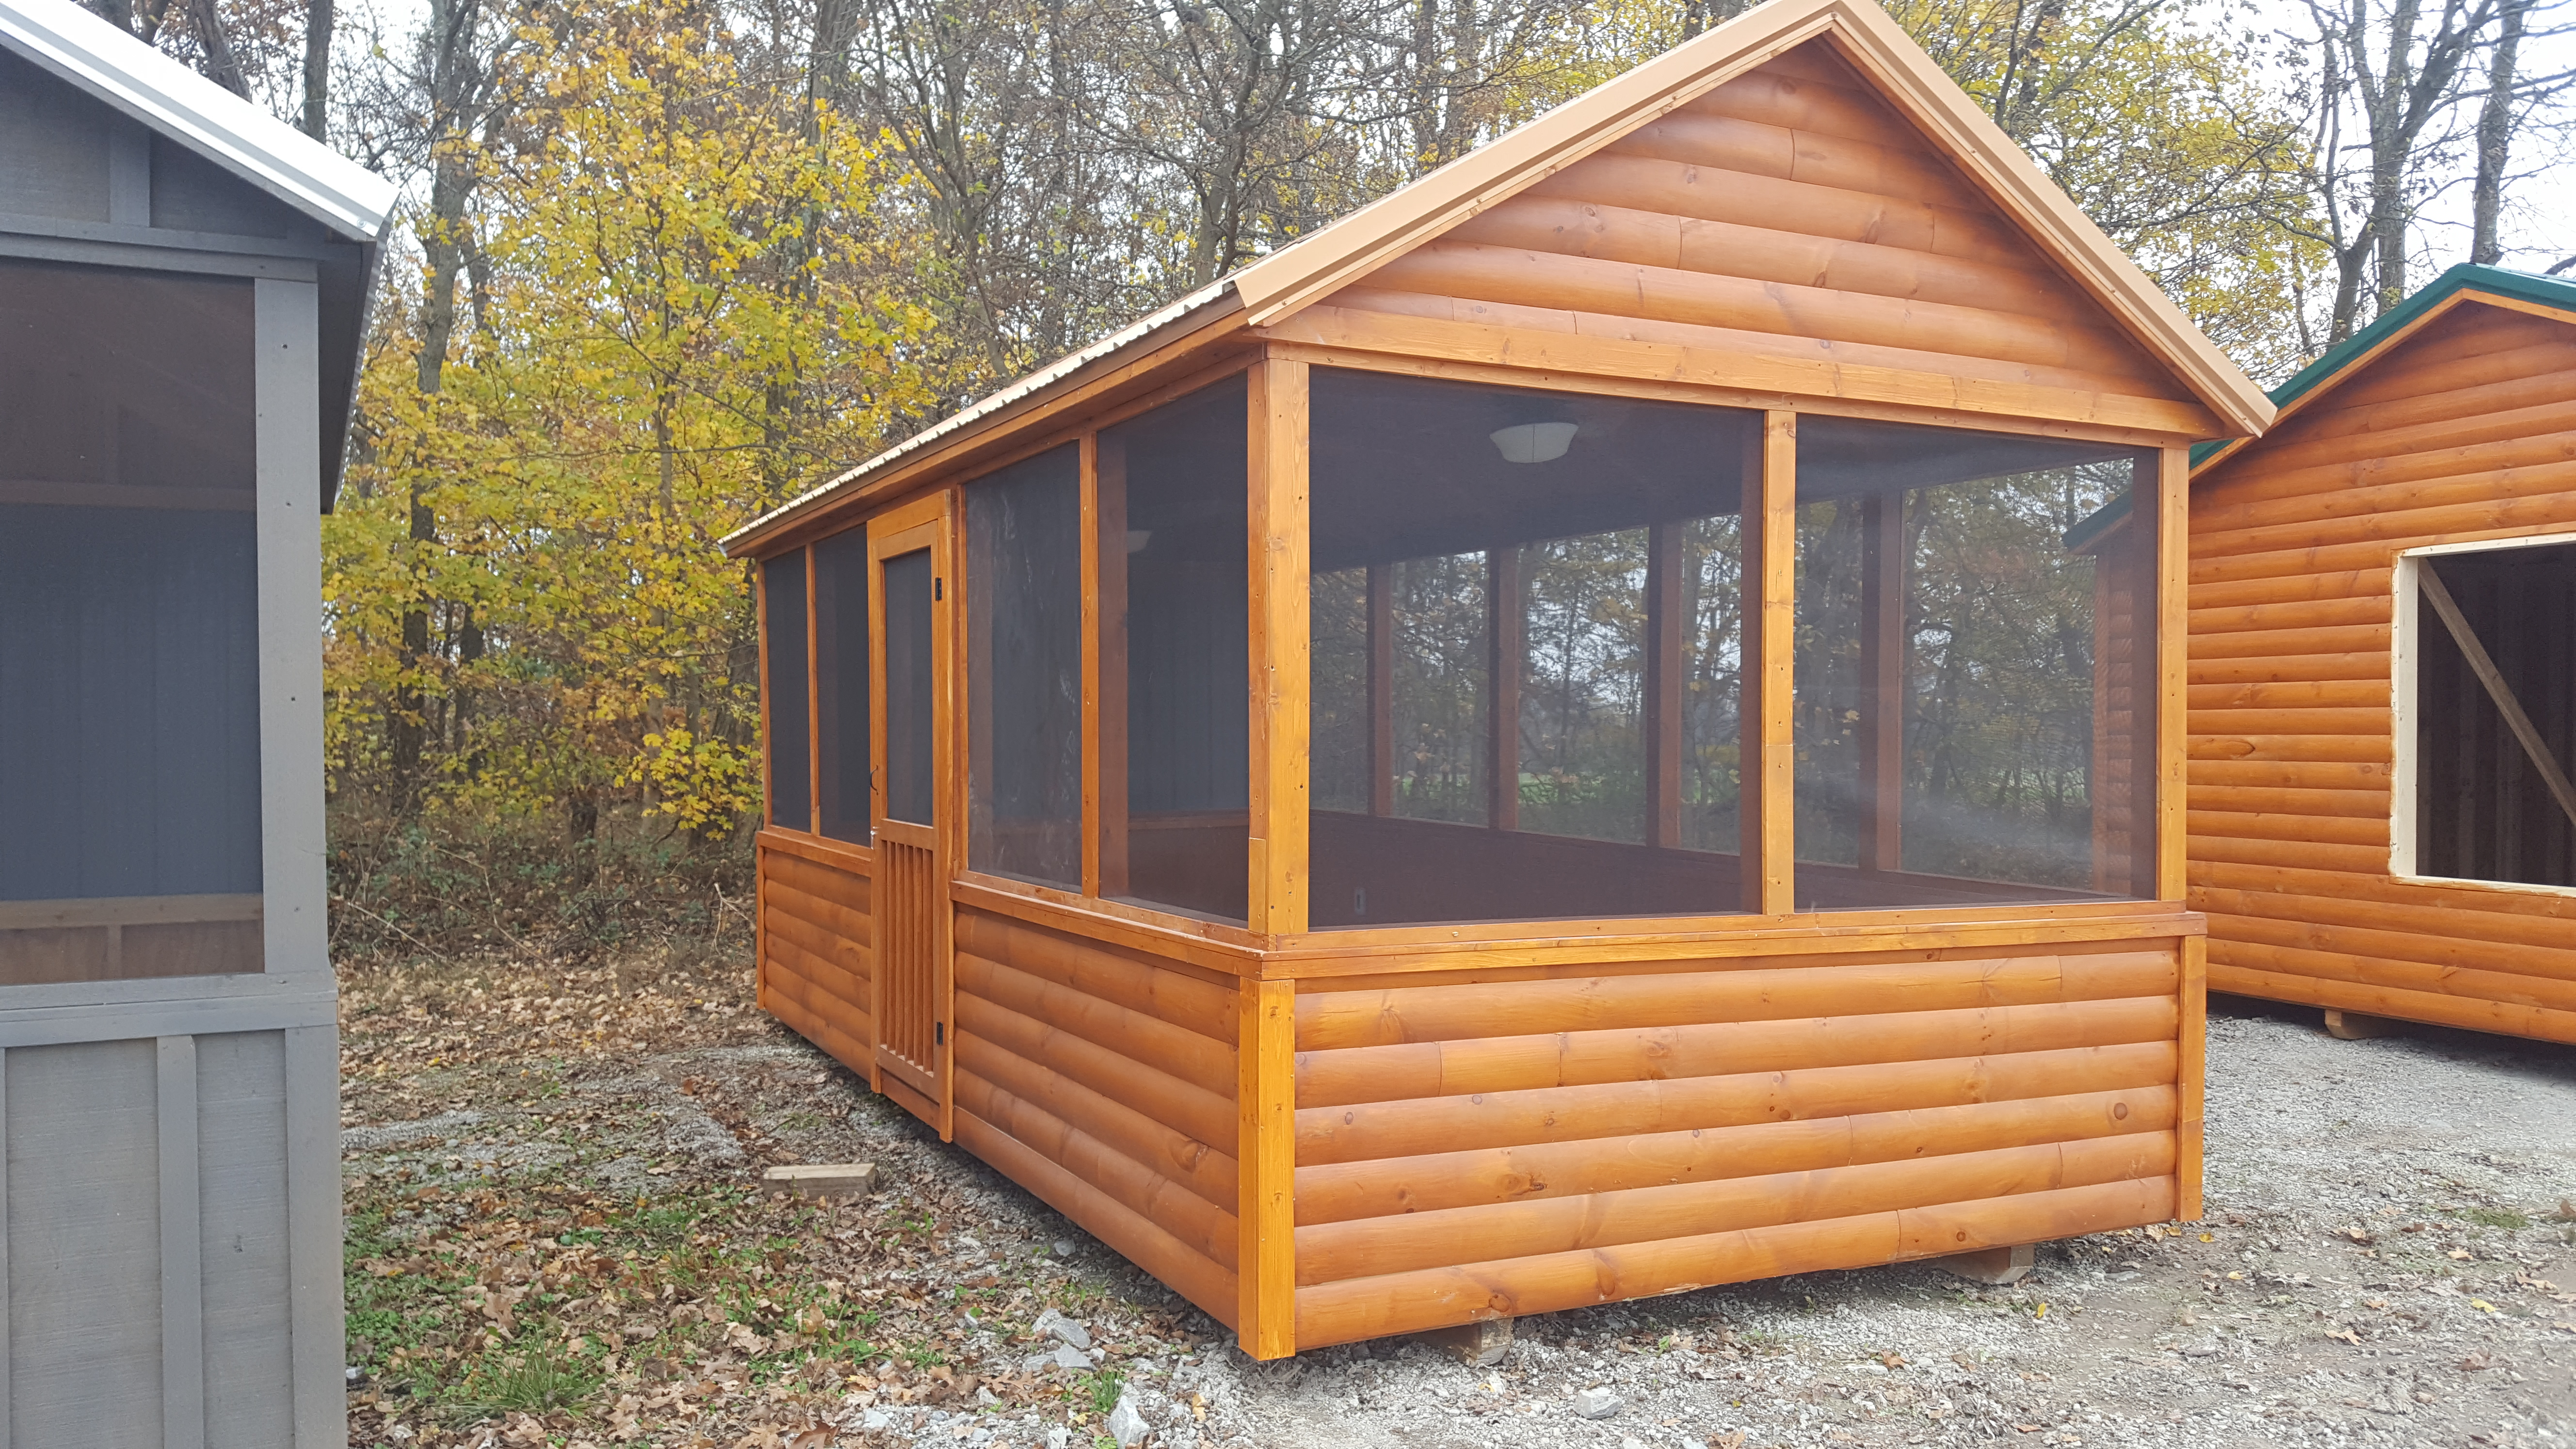 logs vacations information rent official authentic cabin visitor disconnect jamestown modern the made family of cabins marina kentucky site is reconnect two world for one log grey with photo